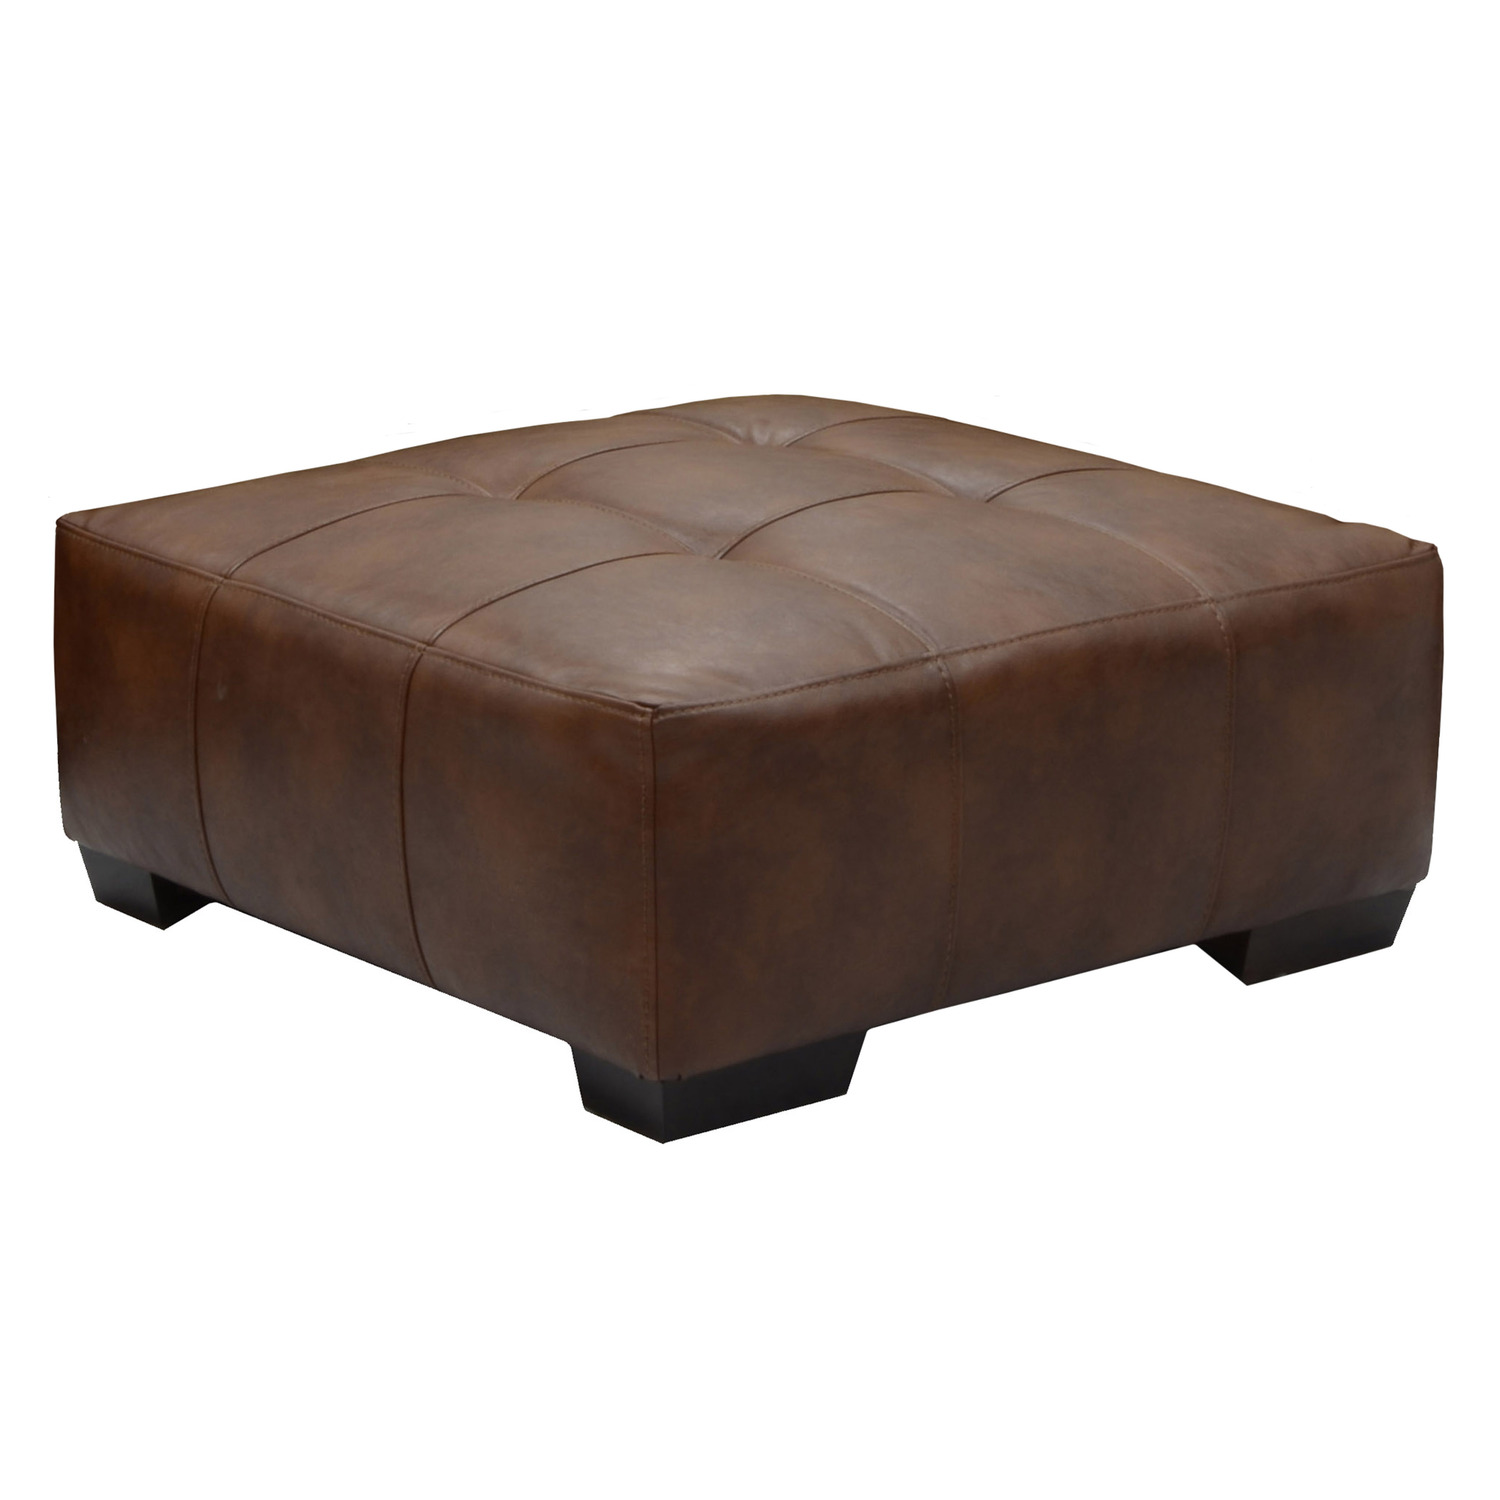 ... Strickland Cocktail Ottoman by OJ Commerce 4456-28-1223-09 - $389.00